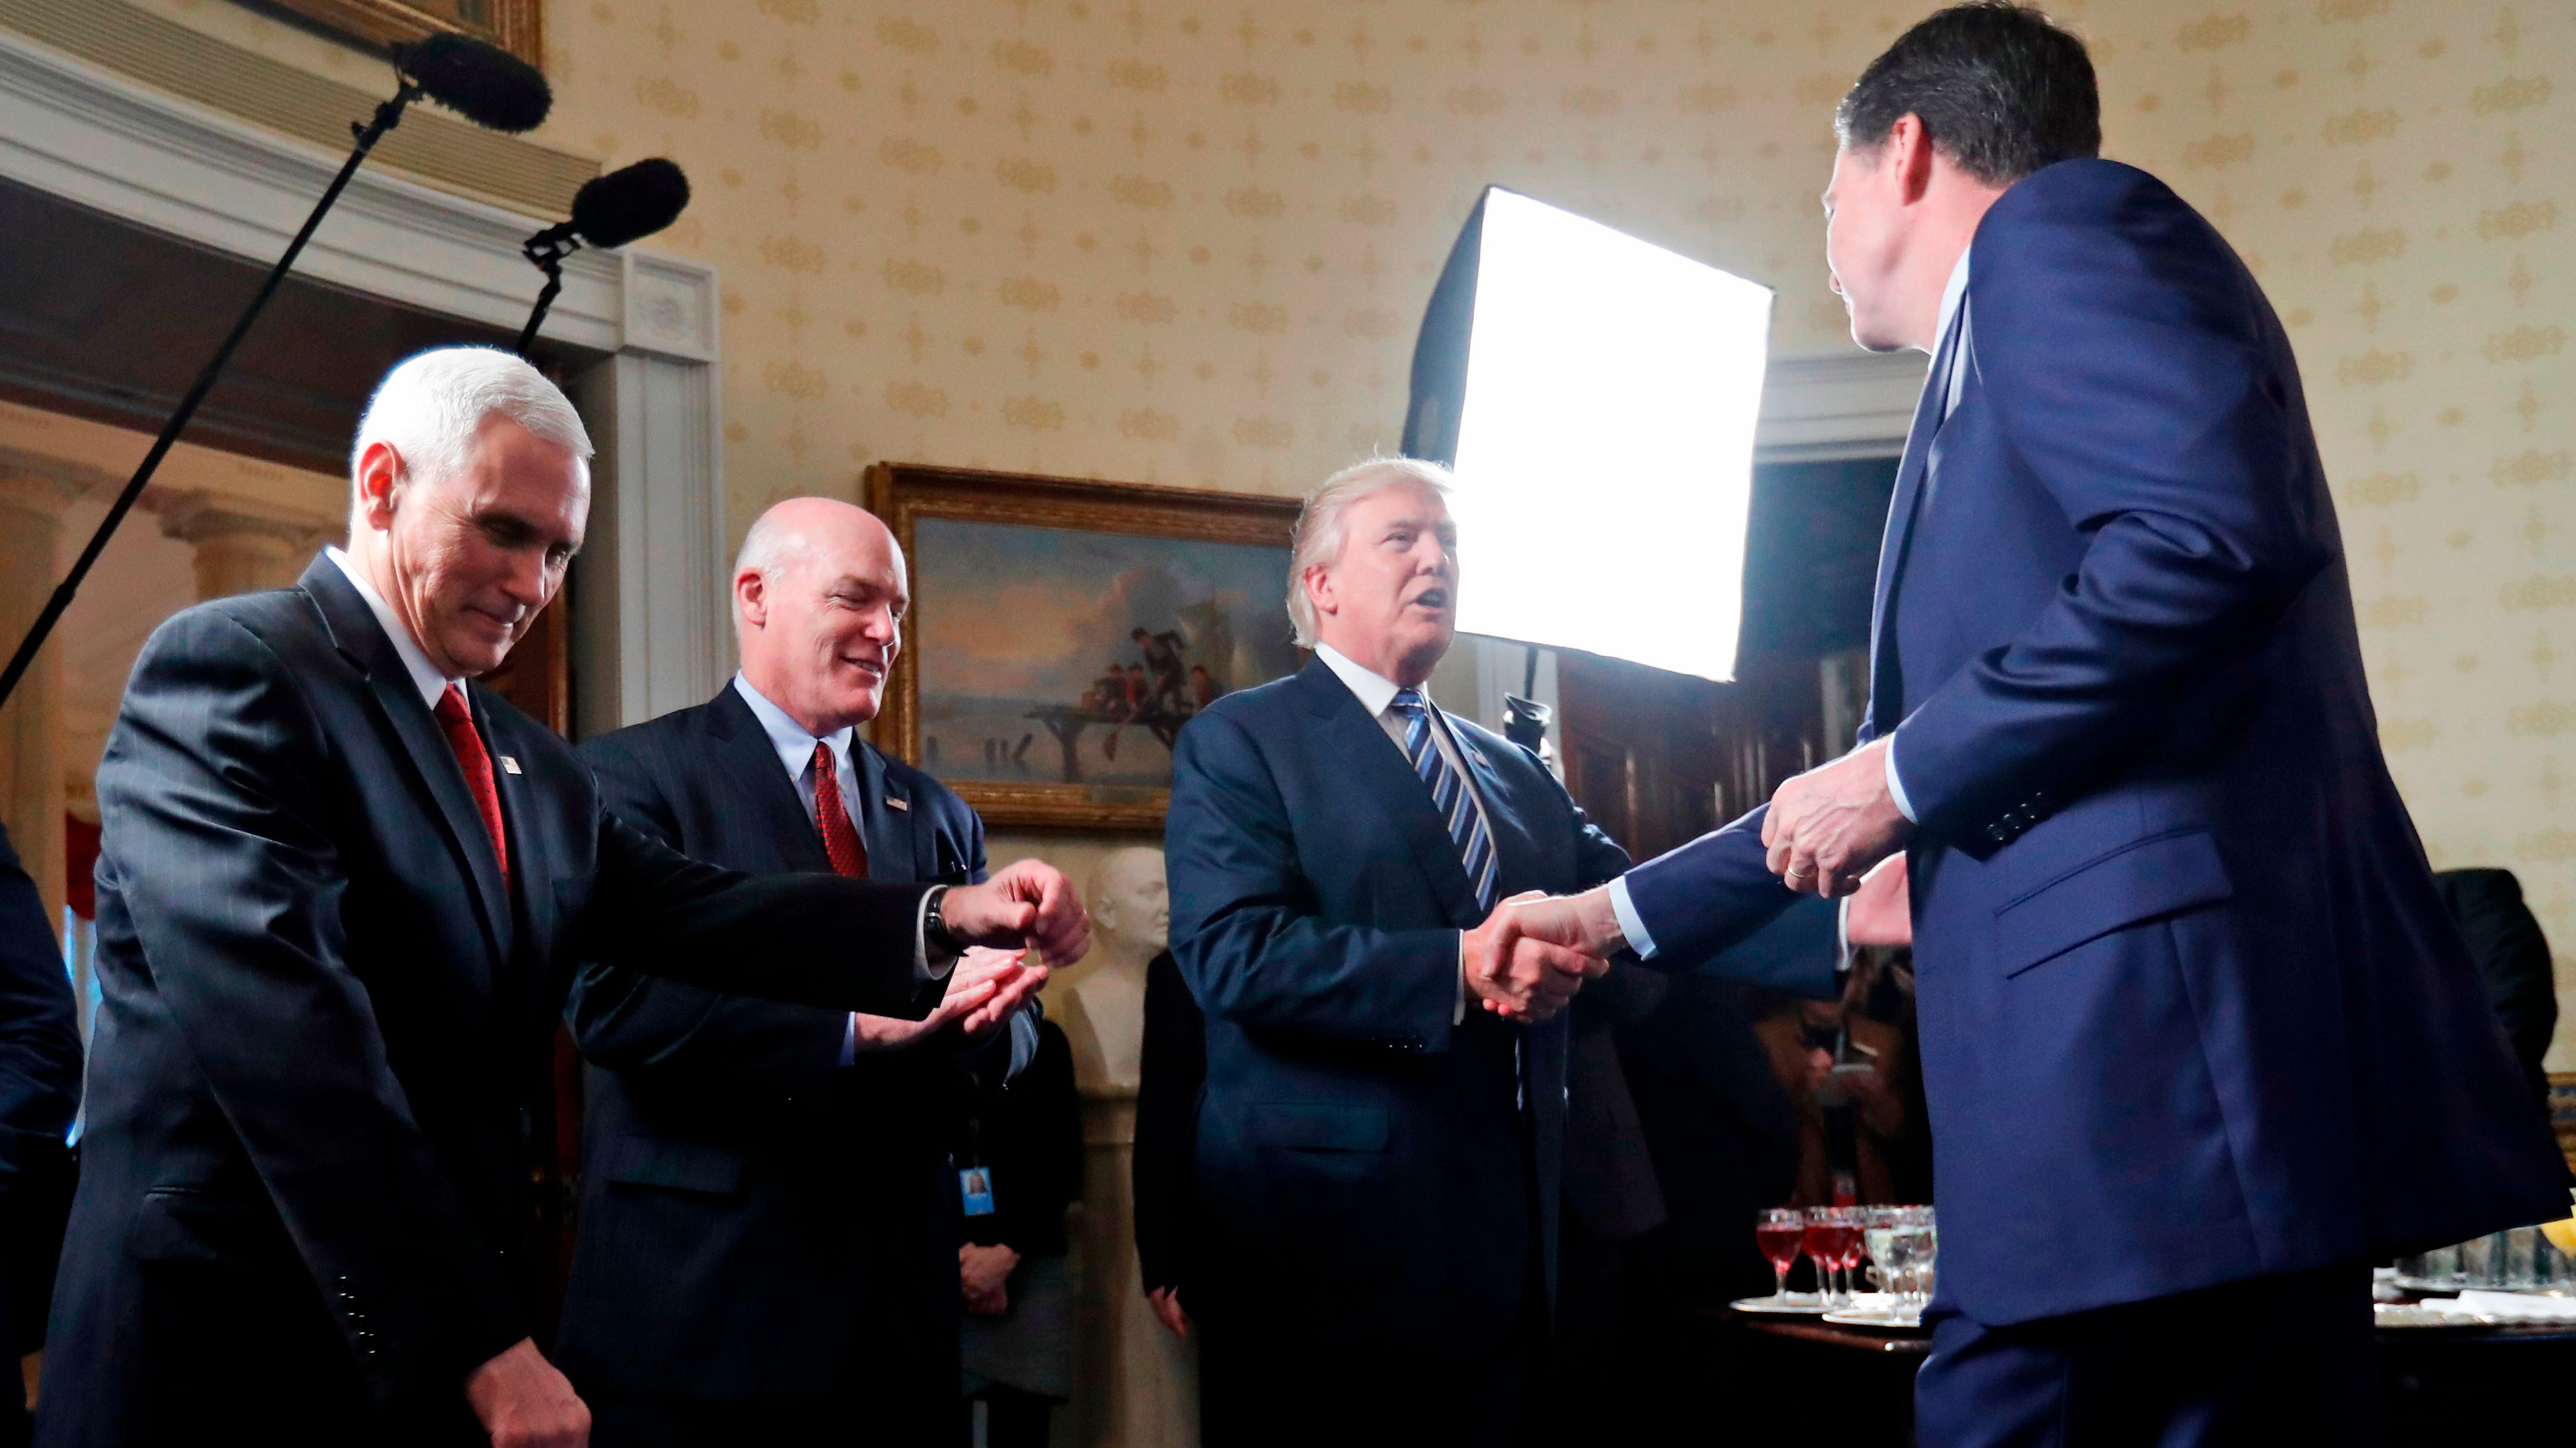 President Donald Trump shakes hands Jan. 22, 2017, with then-FBI Director James Comey during an event for first responders in the Blue Room of the White House. Vice President Mike Pence, left, and Secret Service Director Joseph Clancy also attended.